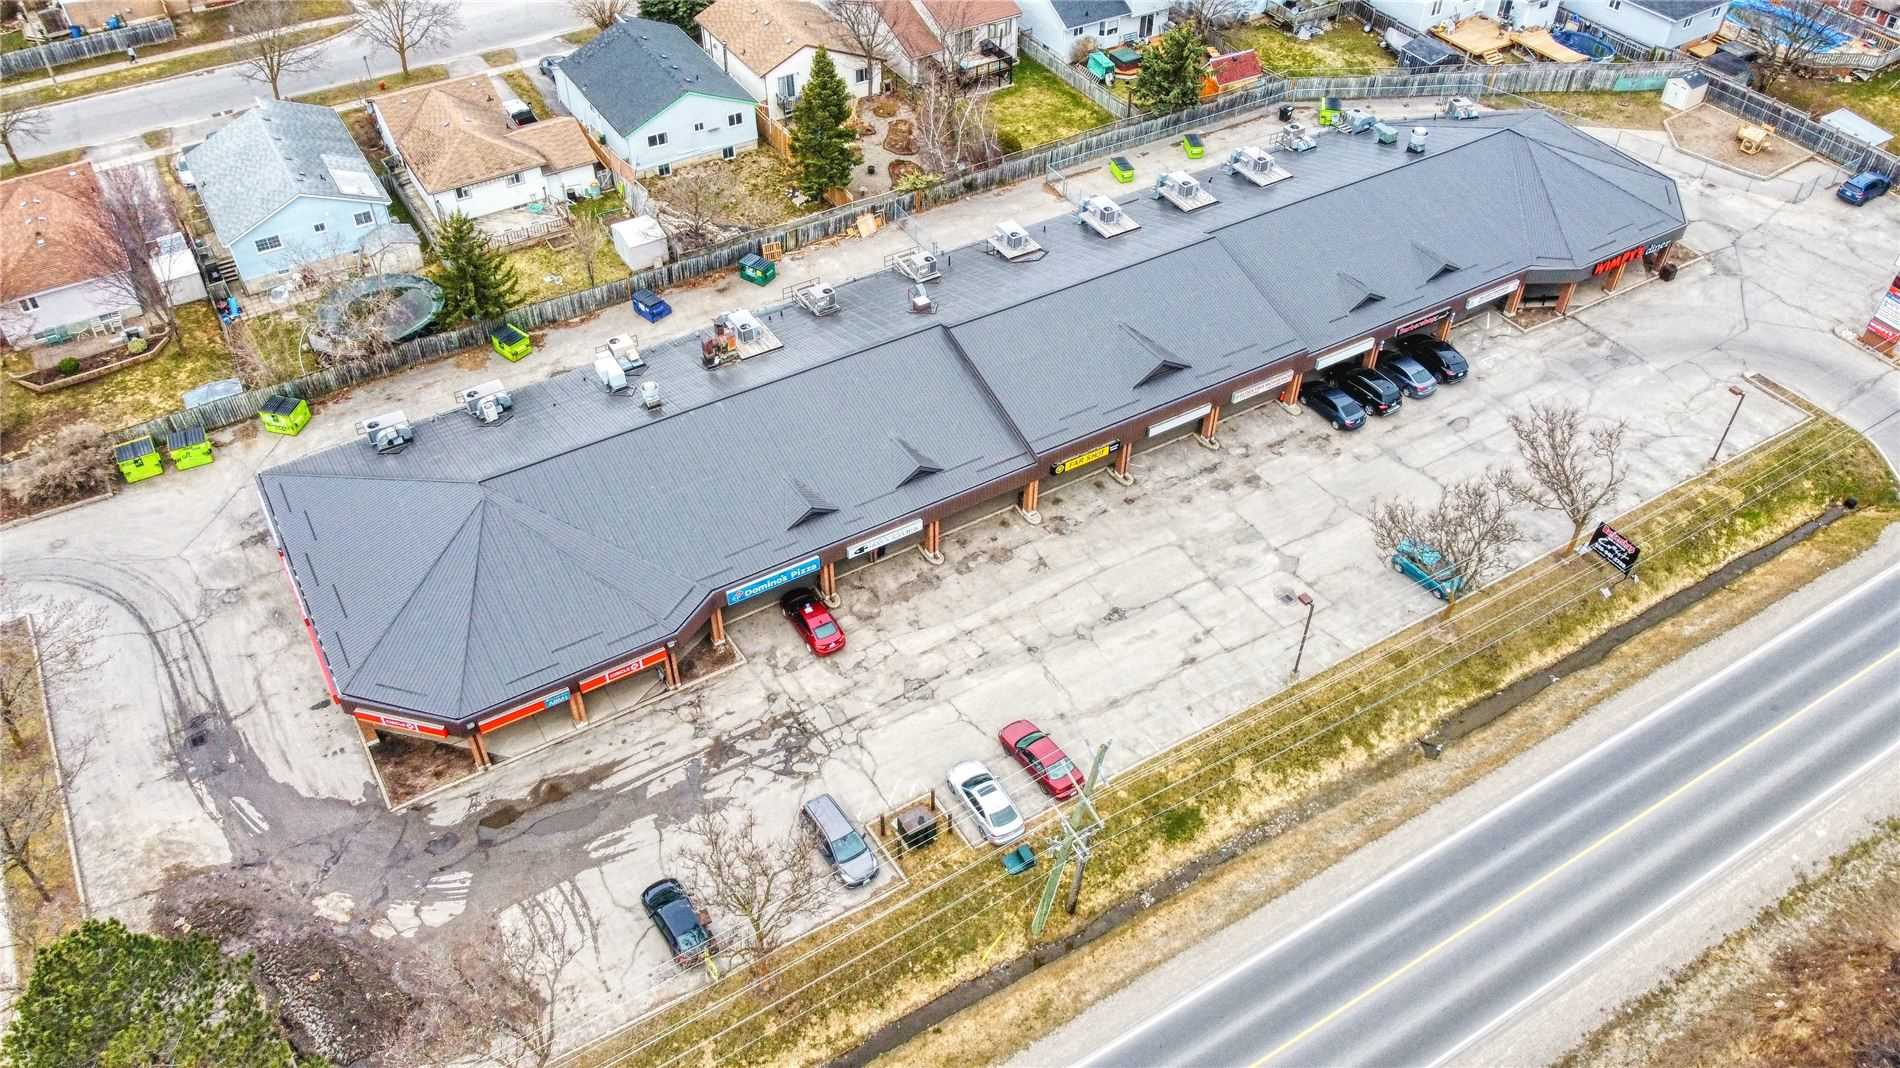 Commercial/retail For Lease In Orangeville , ,Commercial/retail,For Lease,11,Town